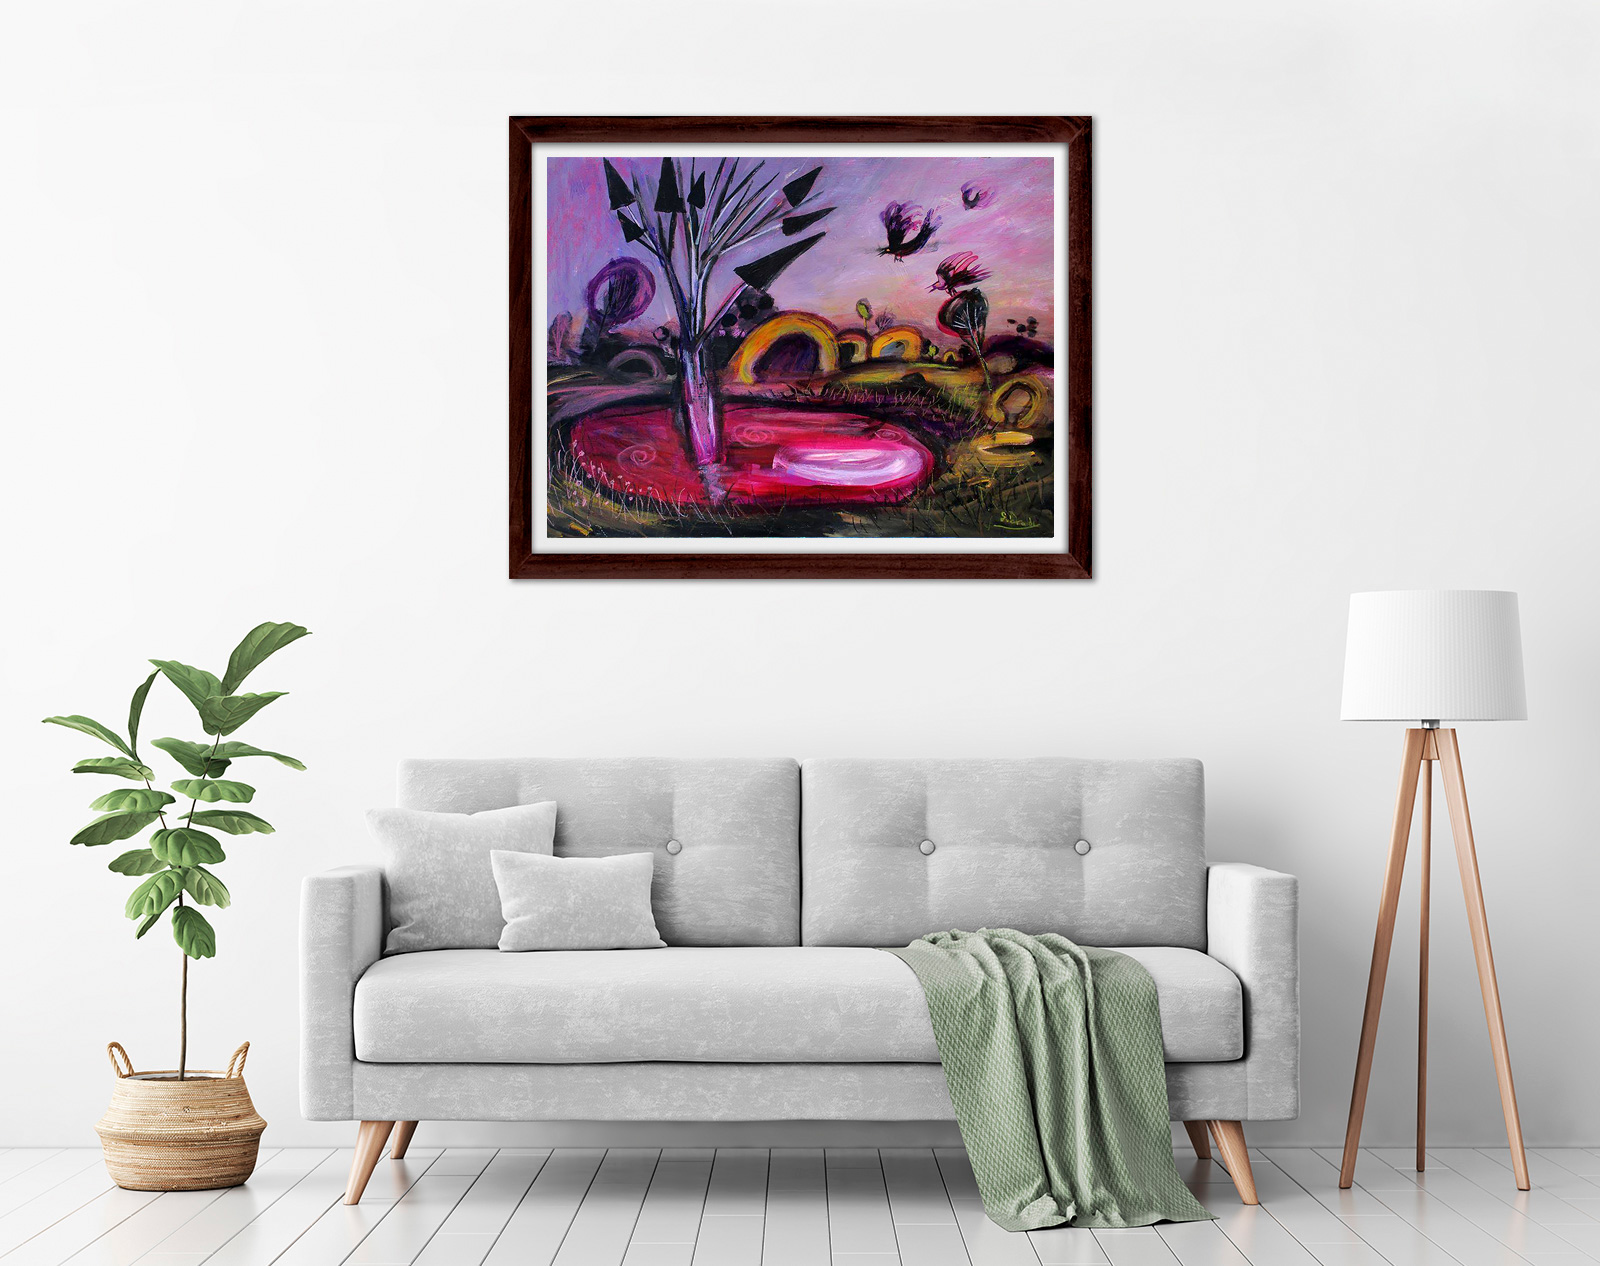 Glenn Brady - 'Magenta Billabong' Framed in a room